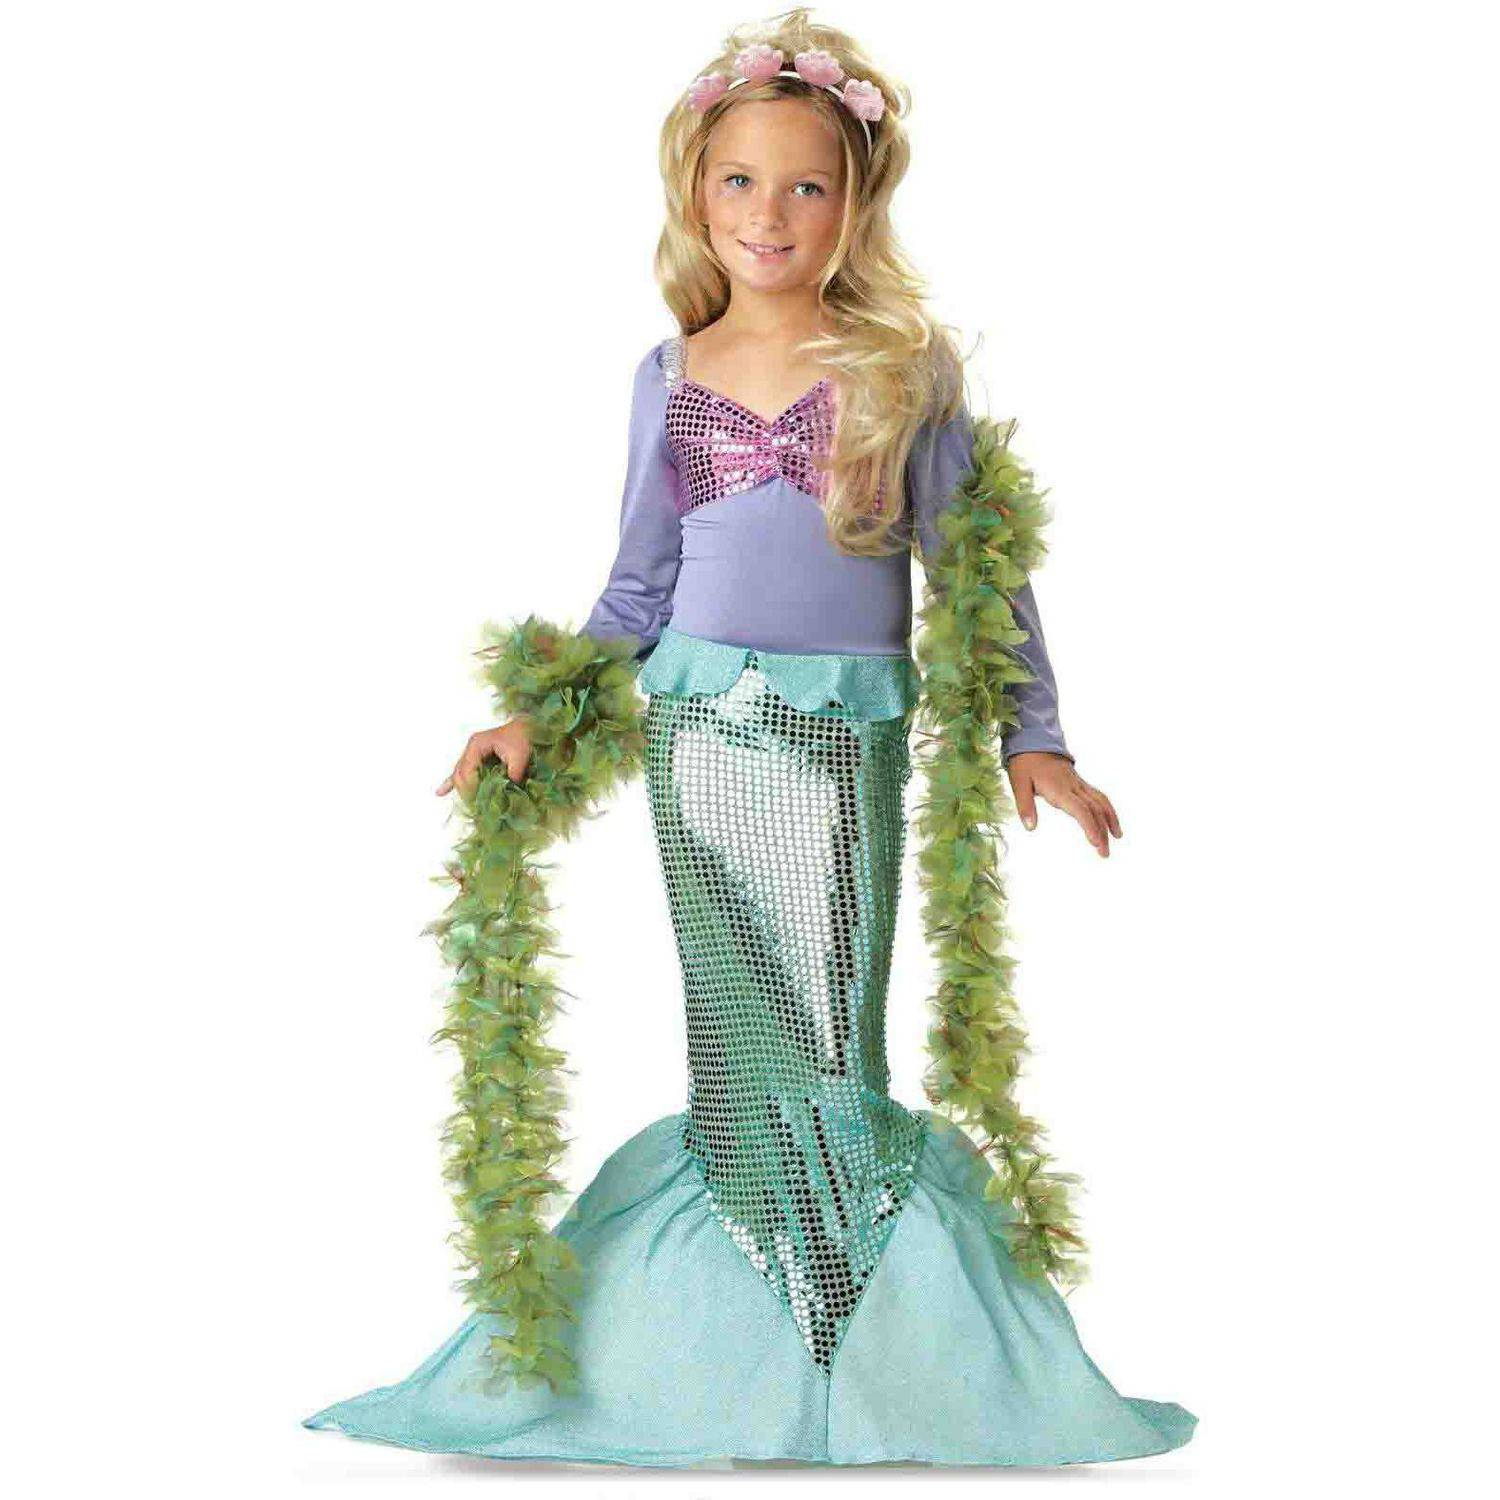 Lil' Mermaid Toddler Halloween Costume, Size 3T-4T